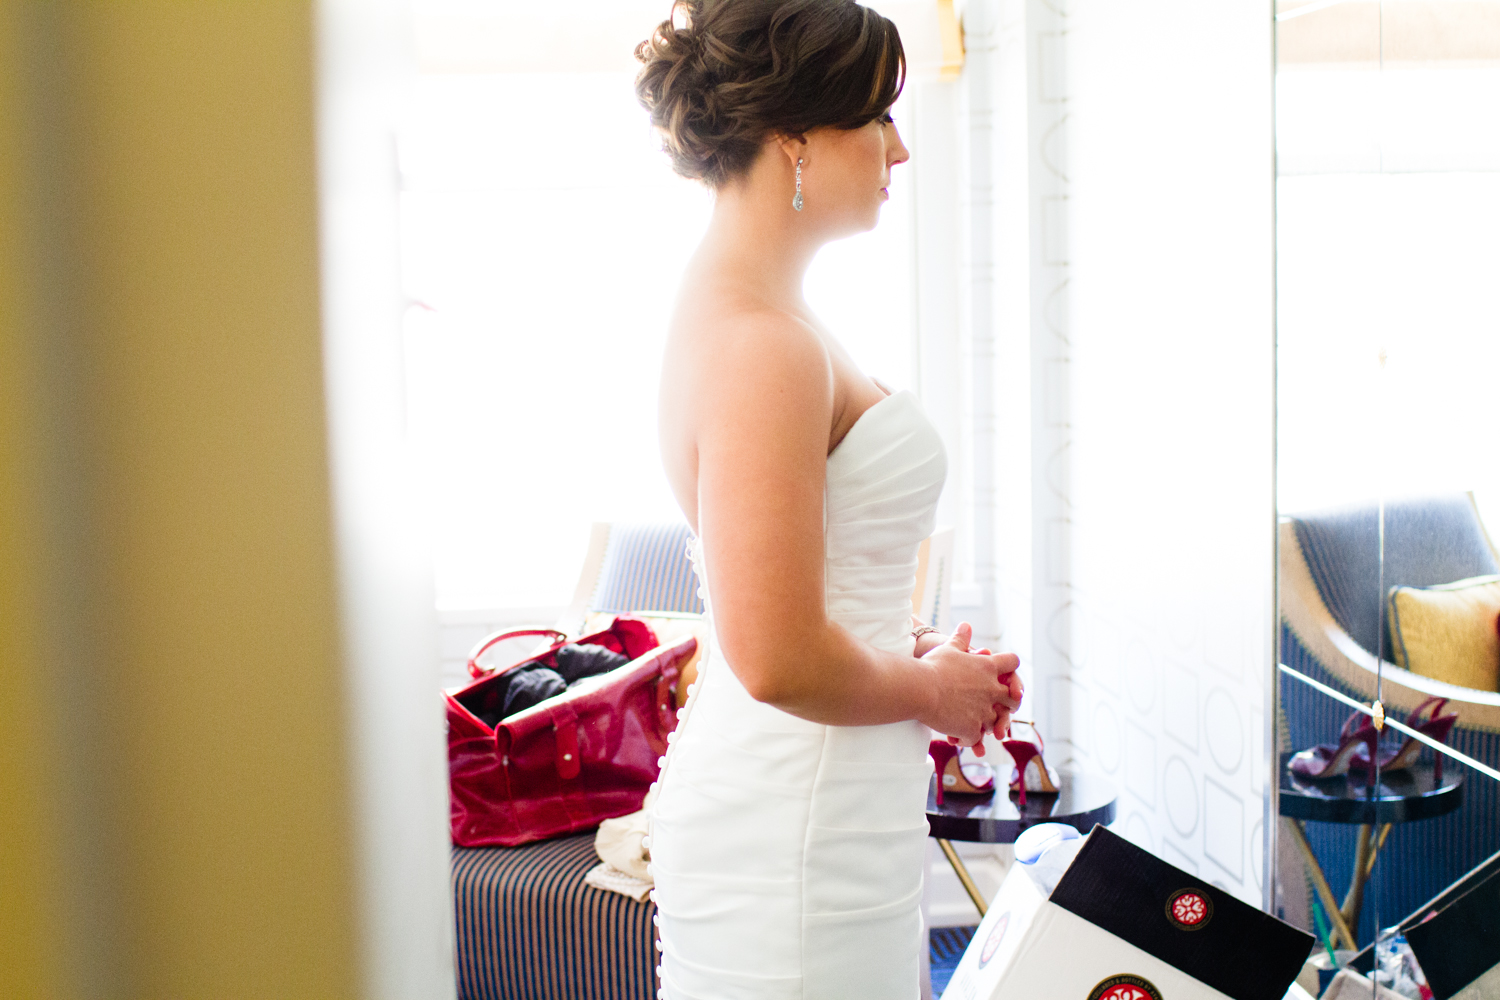 fultons_on_the_river_wedding_chicago_photographer-015.jpg